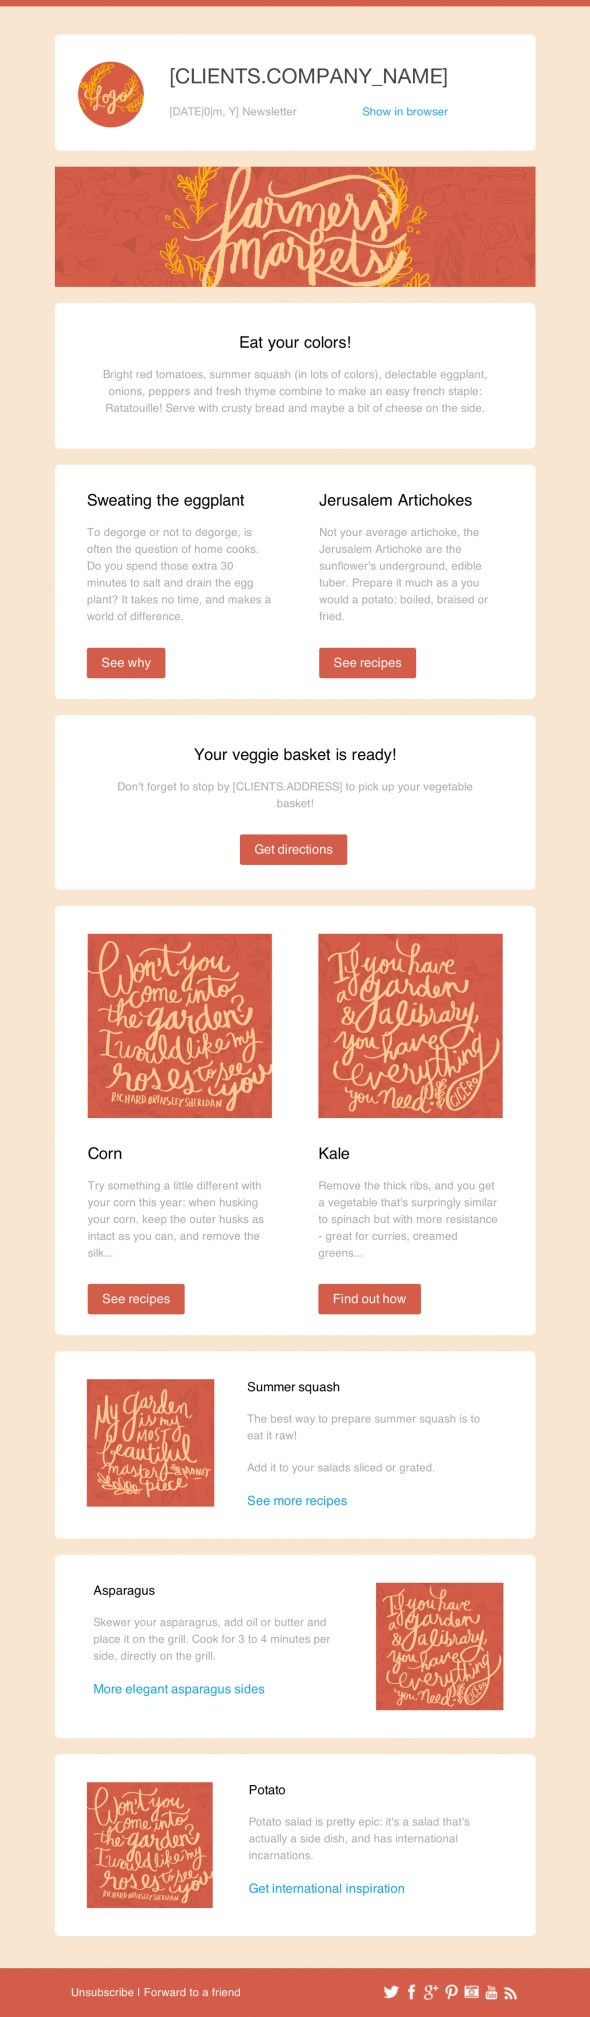 Farmers Market Email Newsletter Template